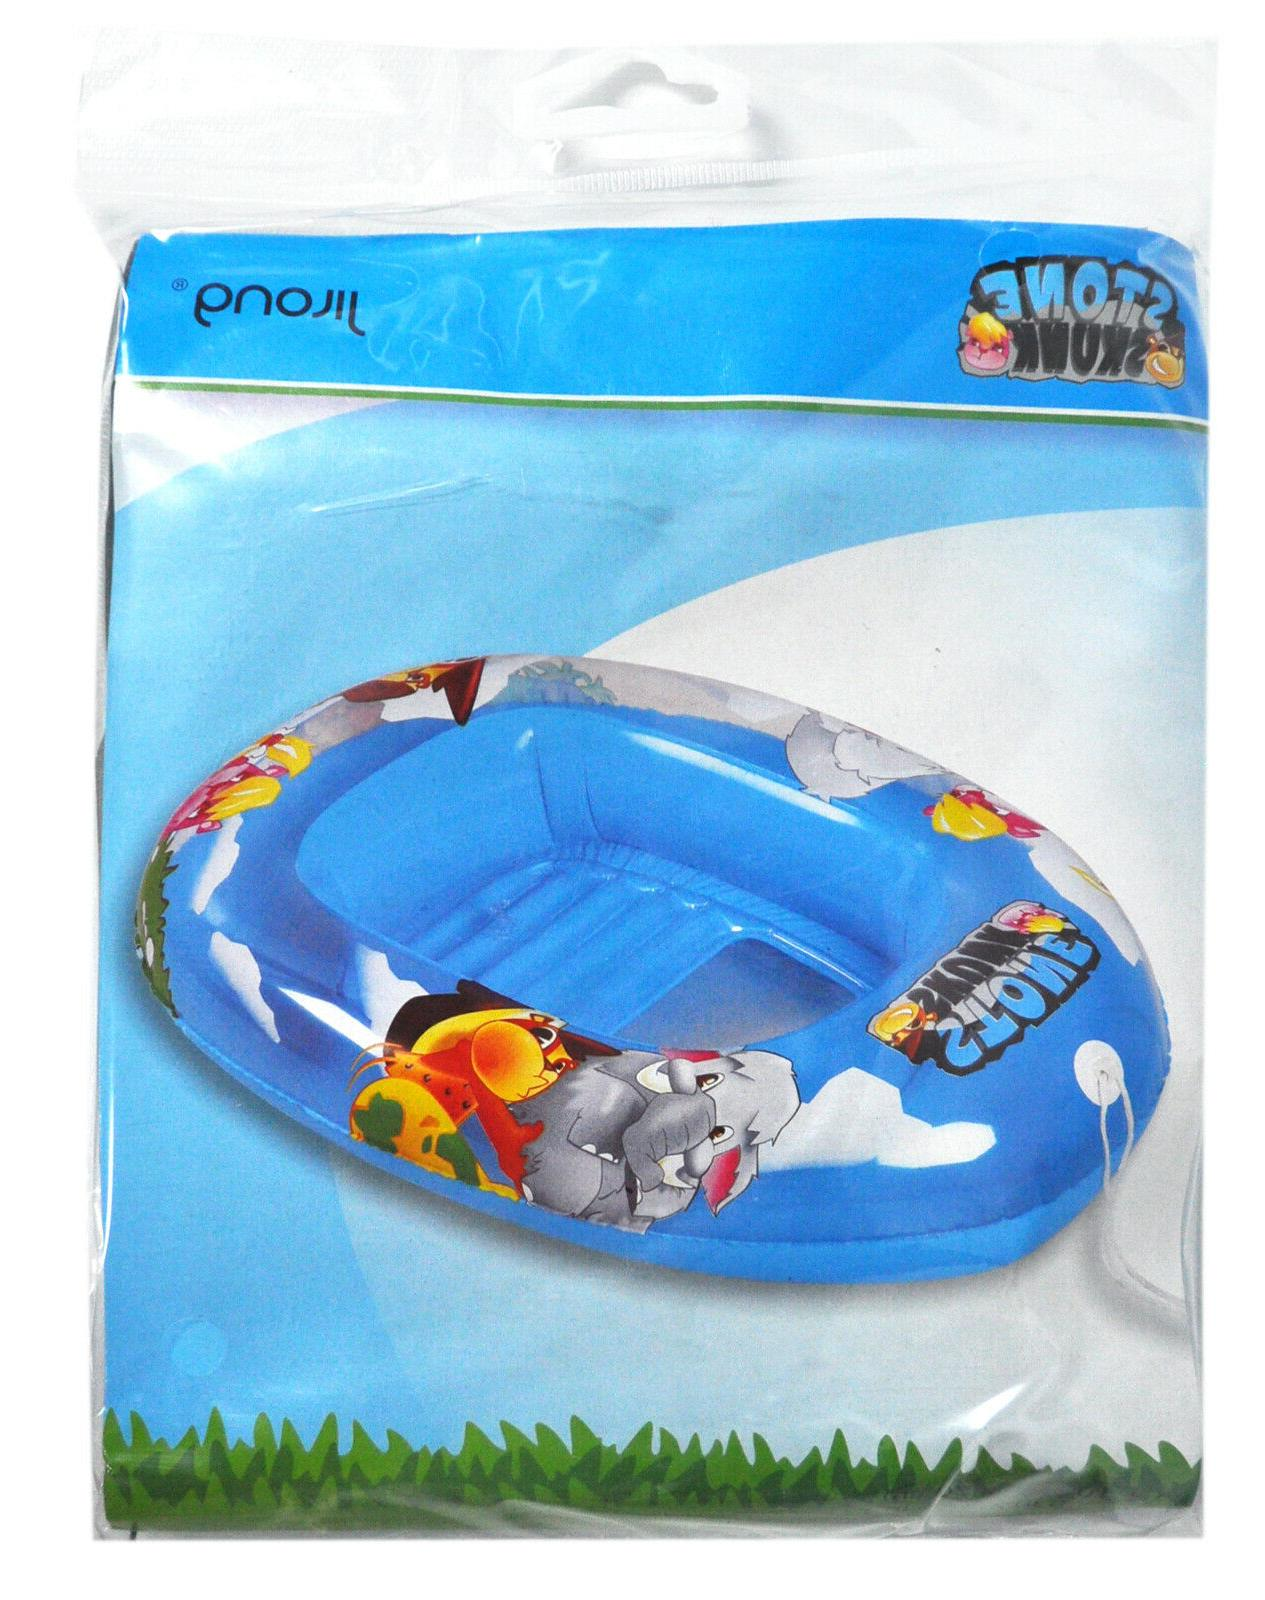 stone skunk inflatable pool boat